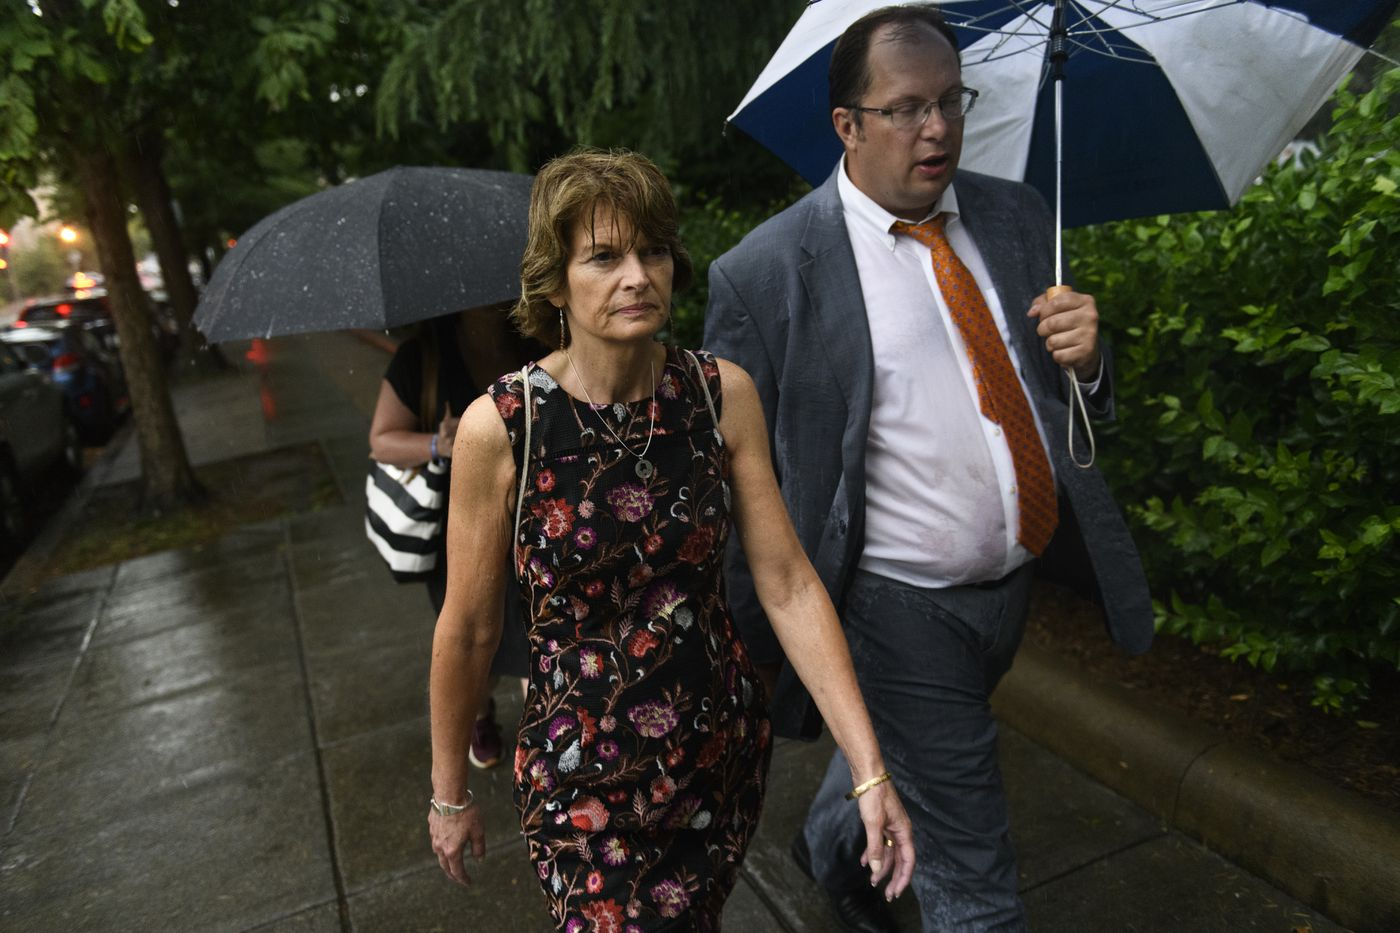 Sen. Lisa Murkowsk walks home through the rain while talking with her chief of staff Micheal Pawlowski on June 18, 2019. (Marc Lester / ADN)